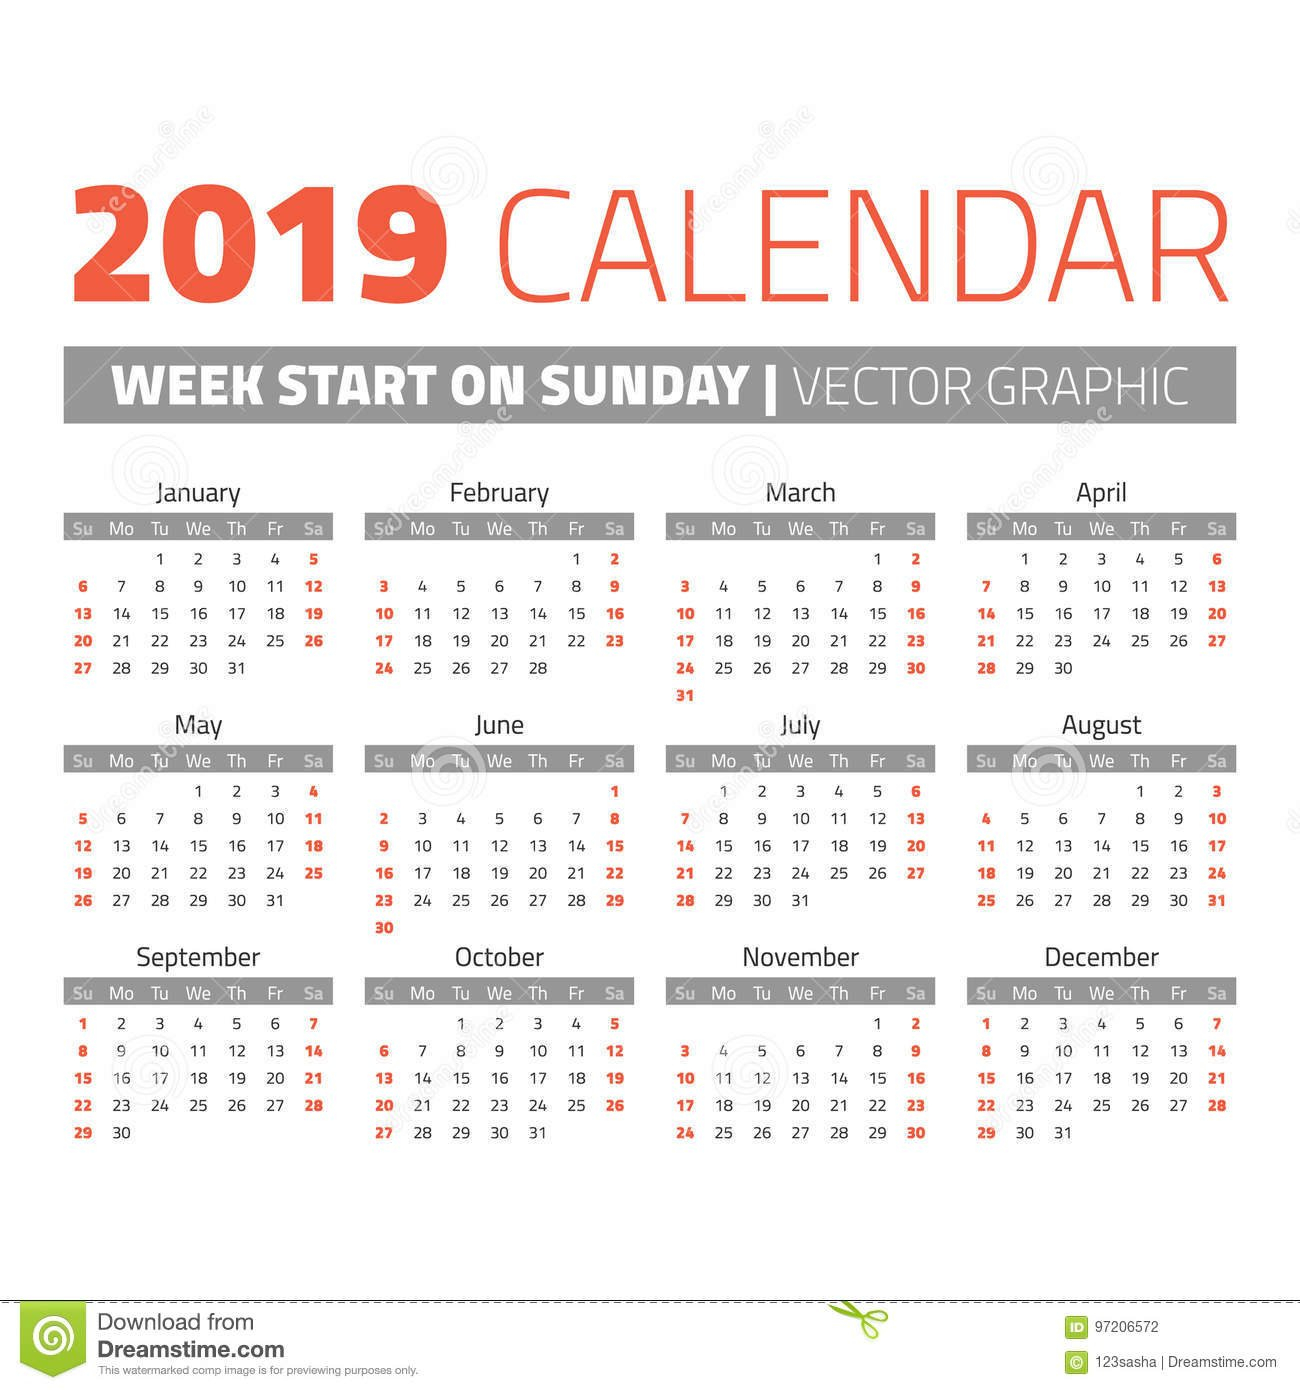 Simple 2019 Year Calendar Stock Vector. Illustration Of Date - 97206572 Calendar Week 14 2019